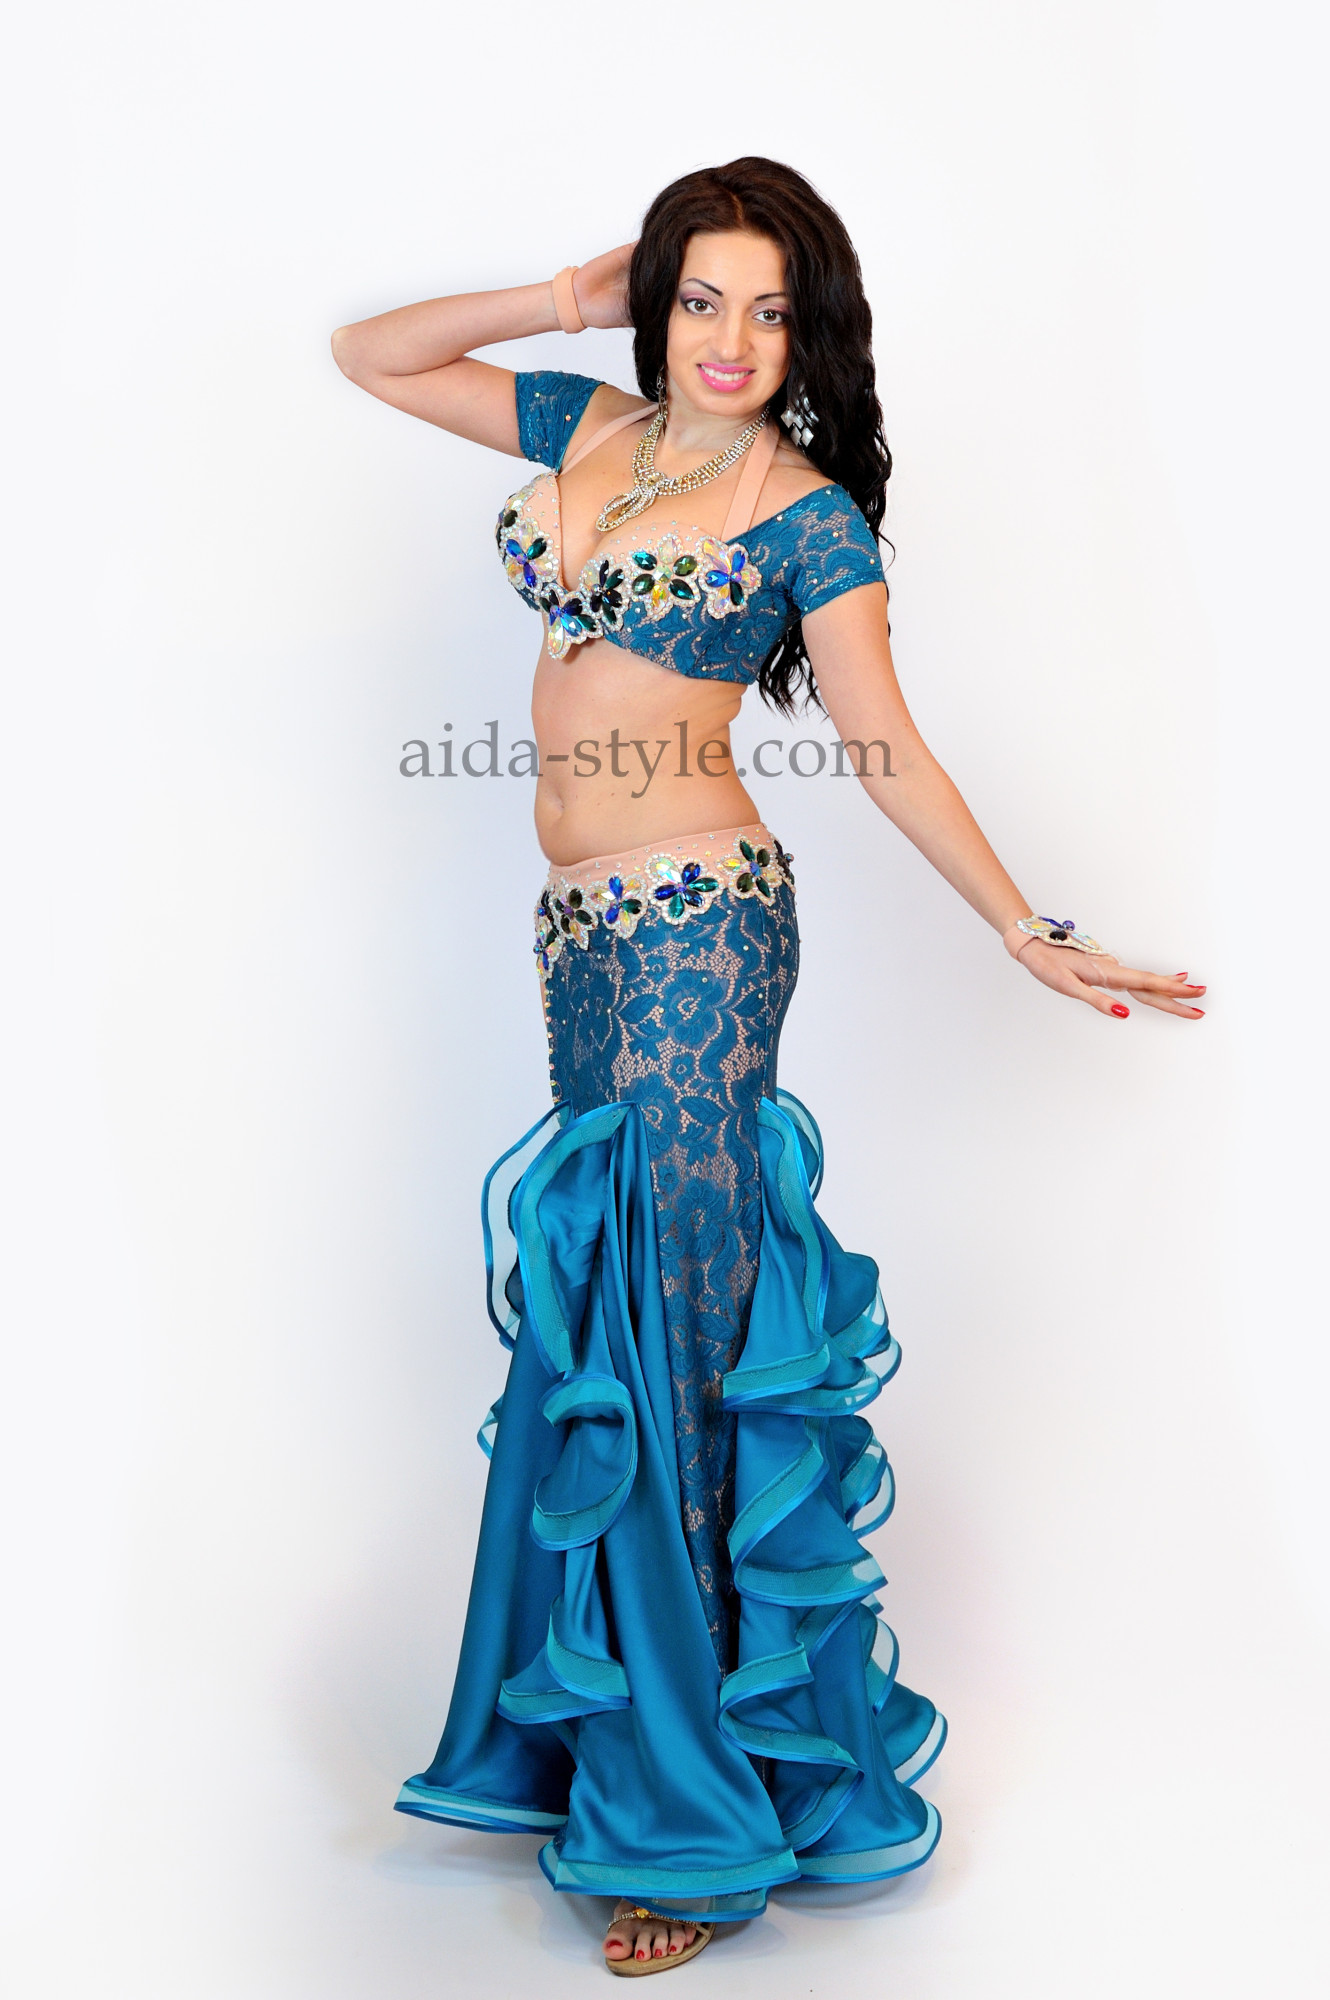 Blue professional belly dance costume with mermaid skird and ruffles